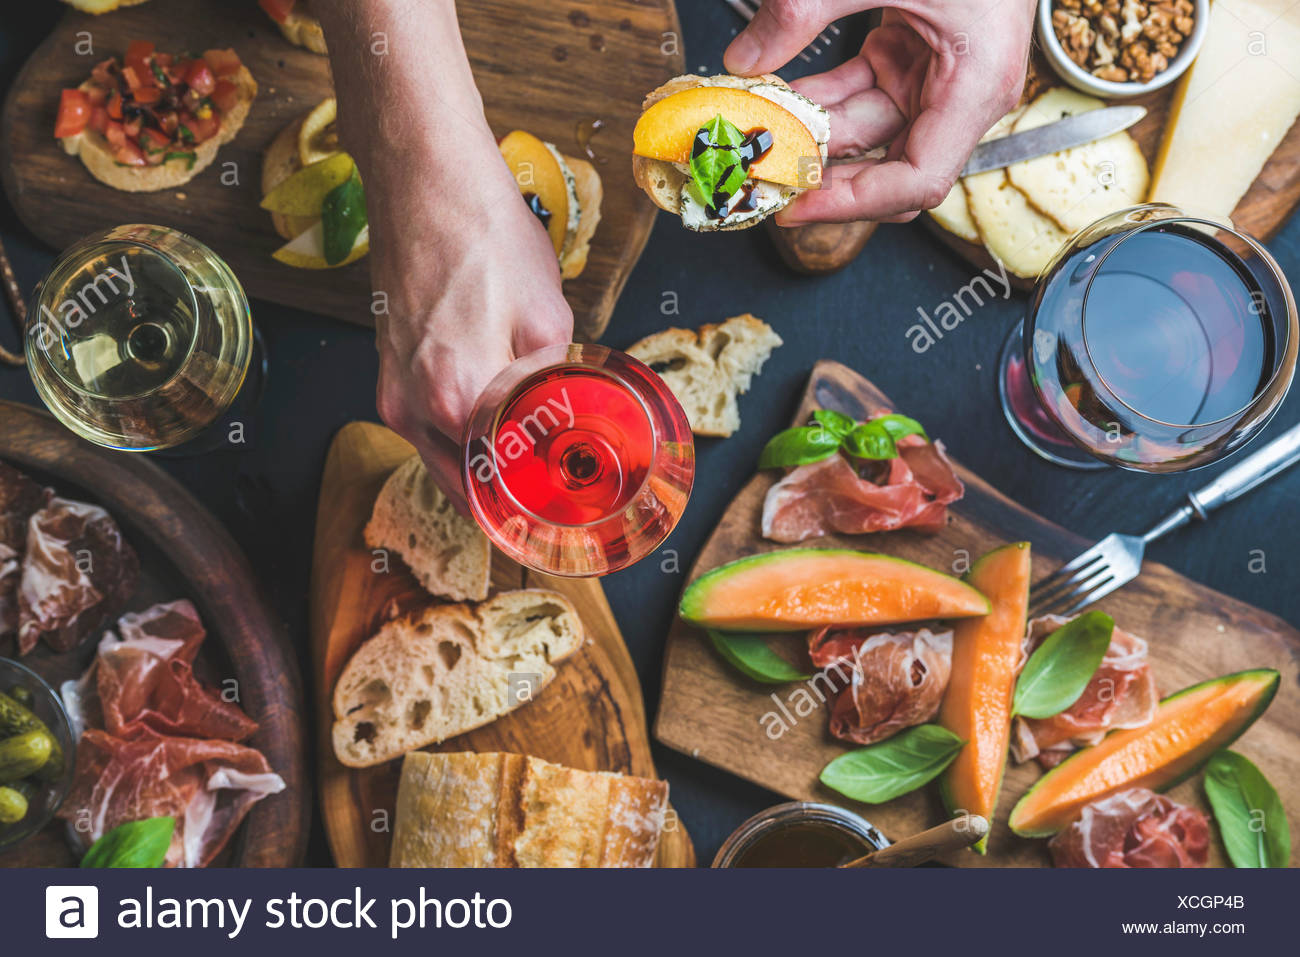 Italian wine antipasti snack variety and man's hands holding glass of rose wine and bruschetta, top view, selective focus - Stock Image